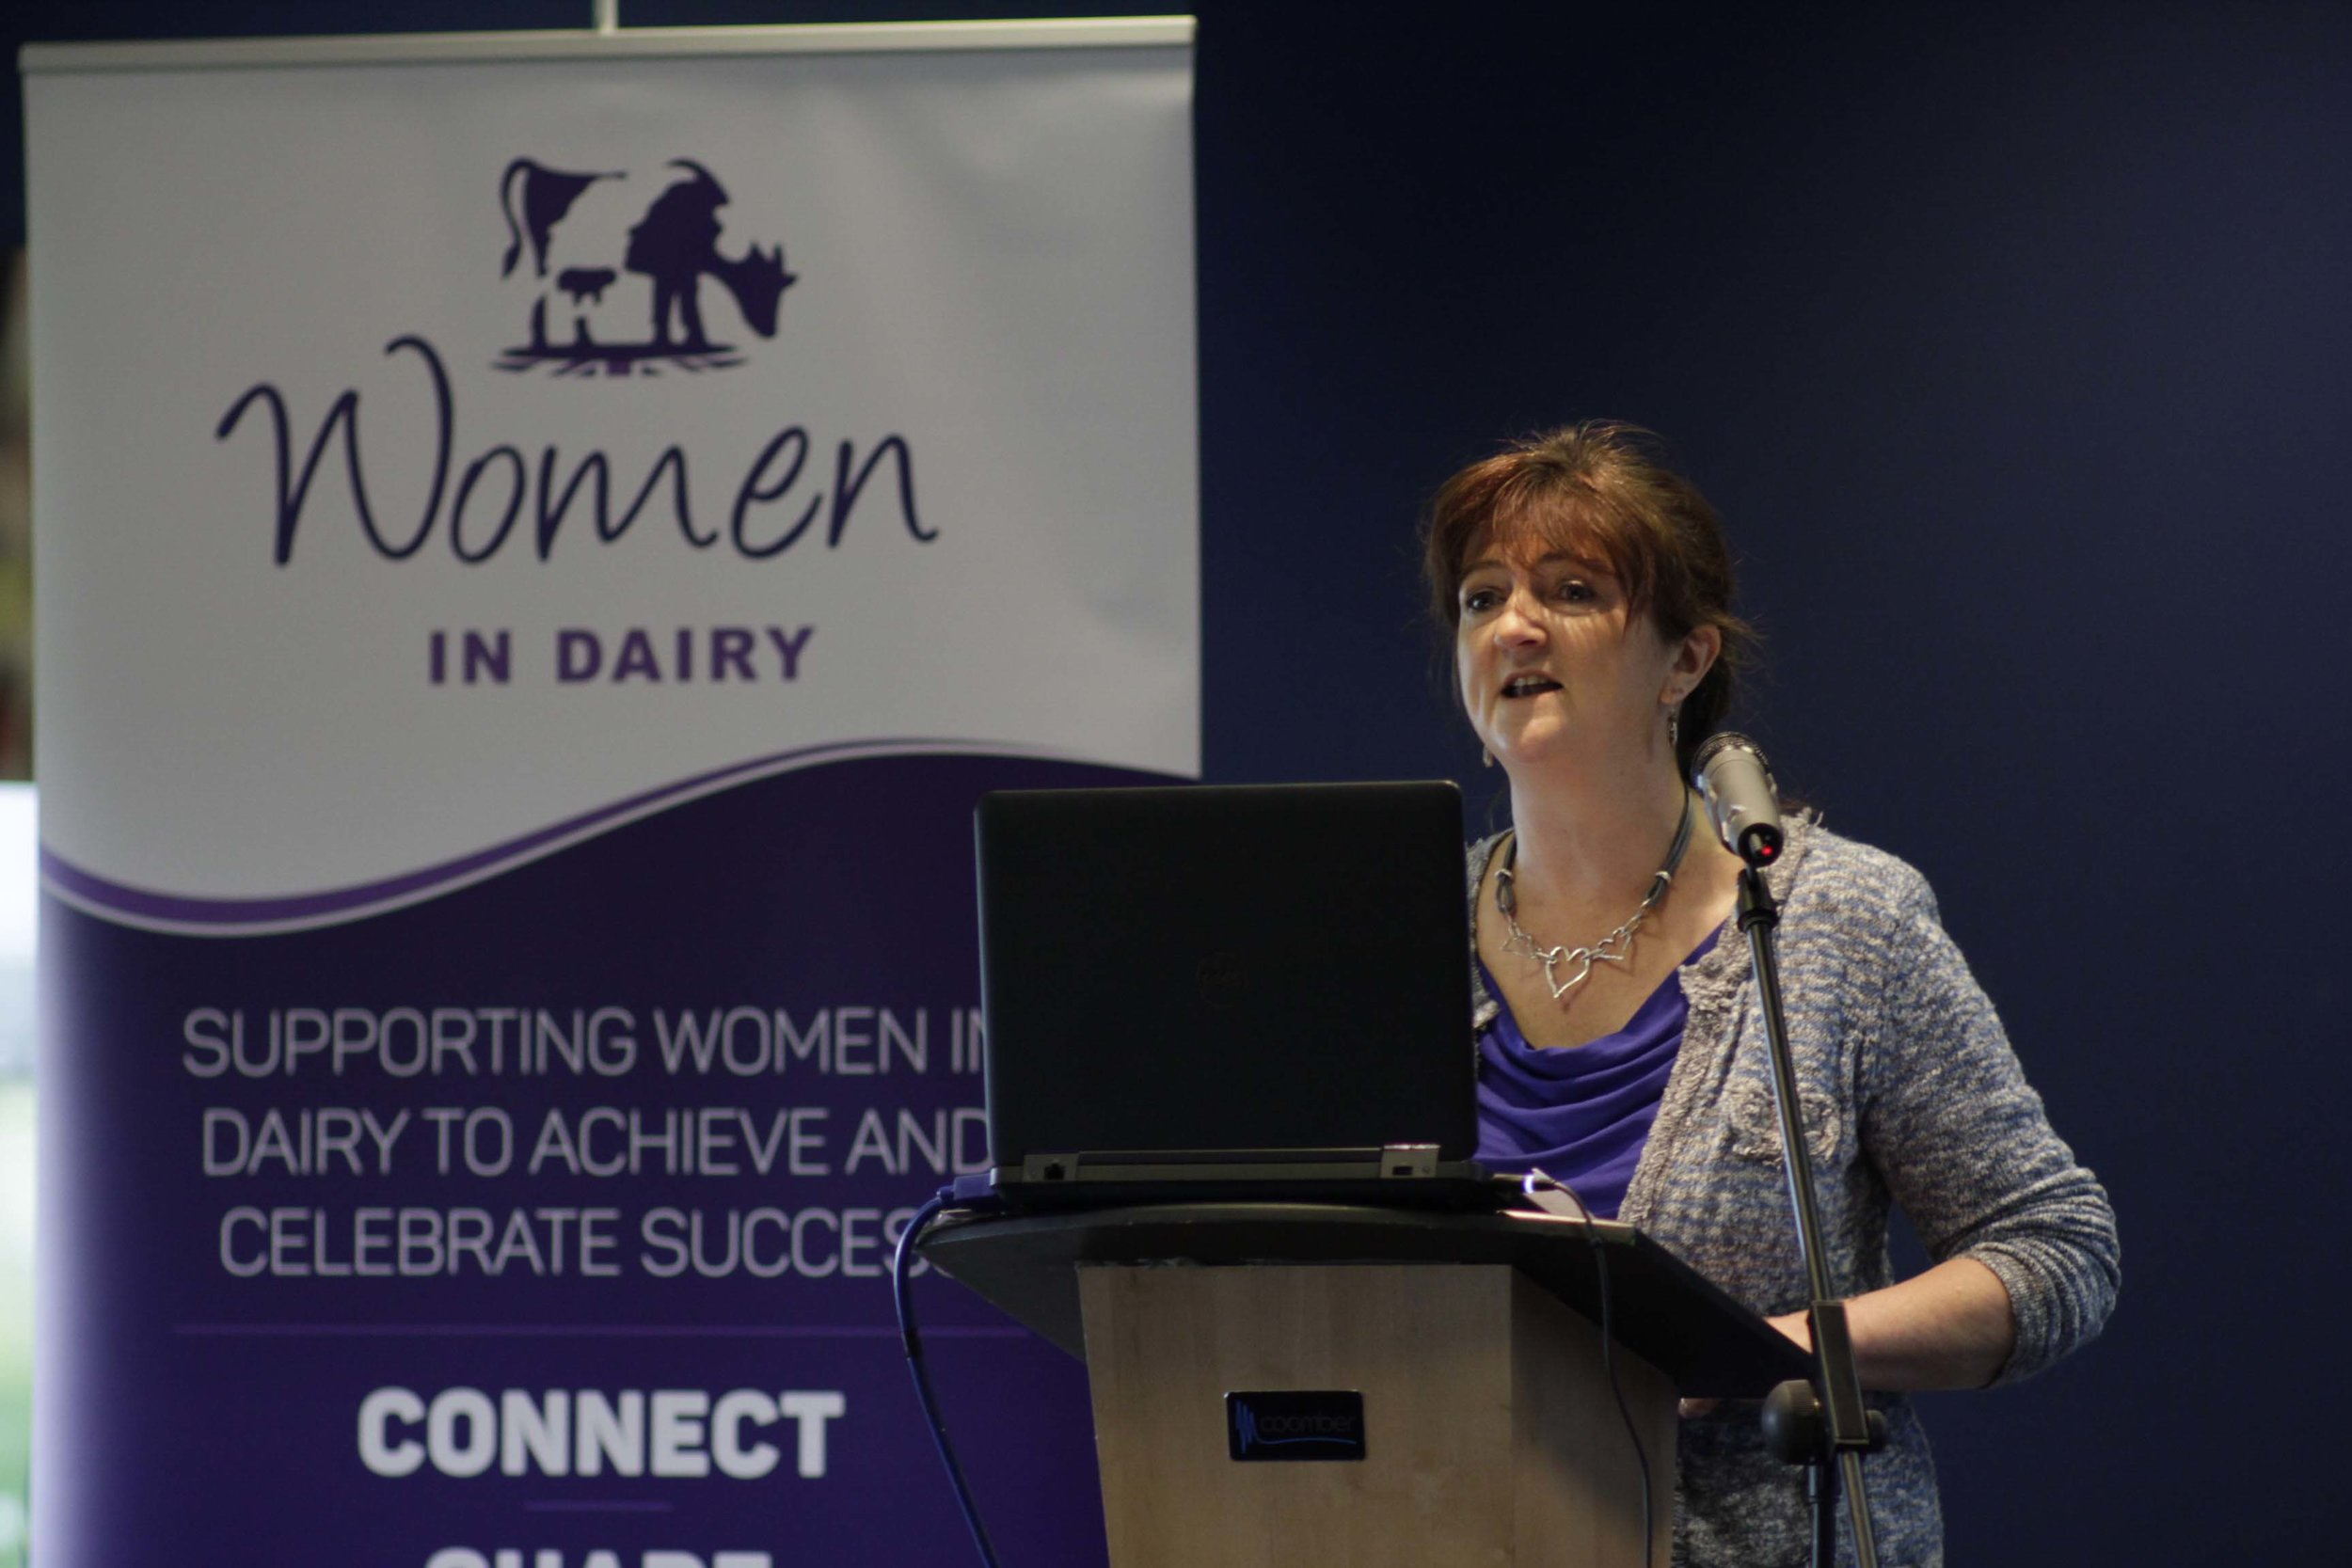 Caroline Drummond, chief executive of LEAF, opened the conference